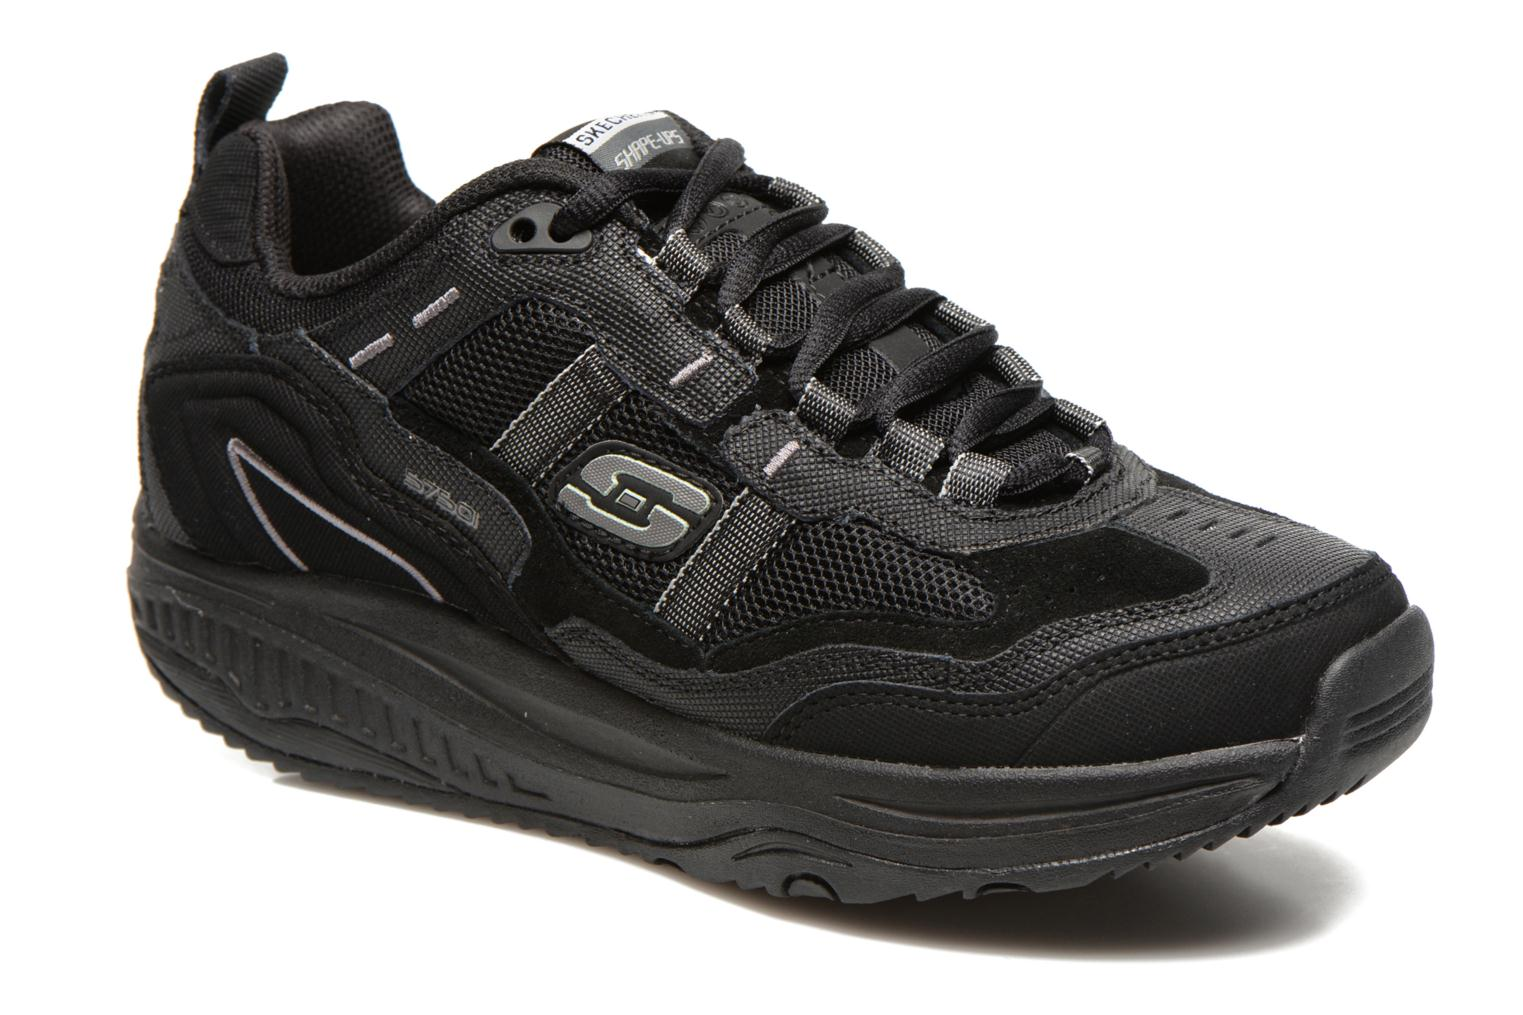 Sneakers Shape-Ups XT Premium Comfort 57501 by Shape-Ups